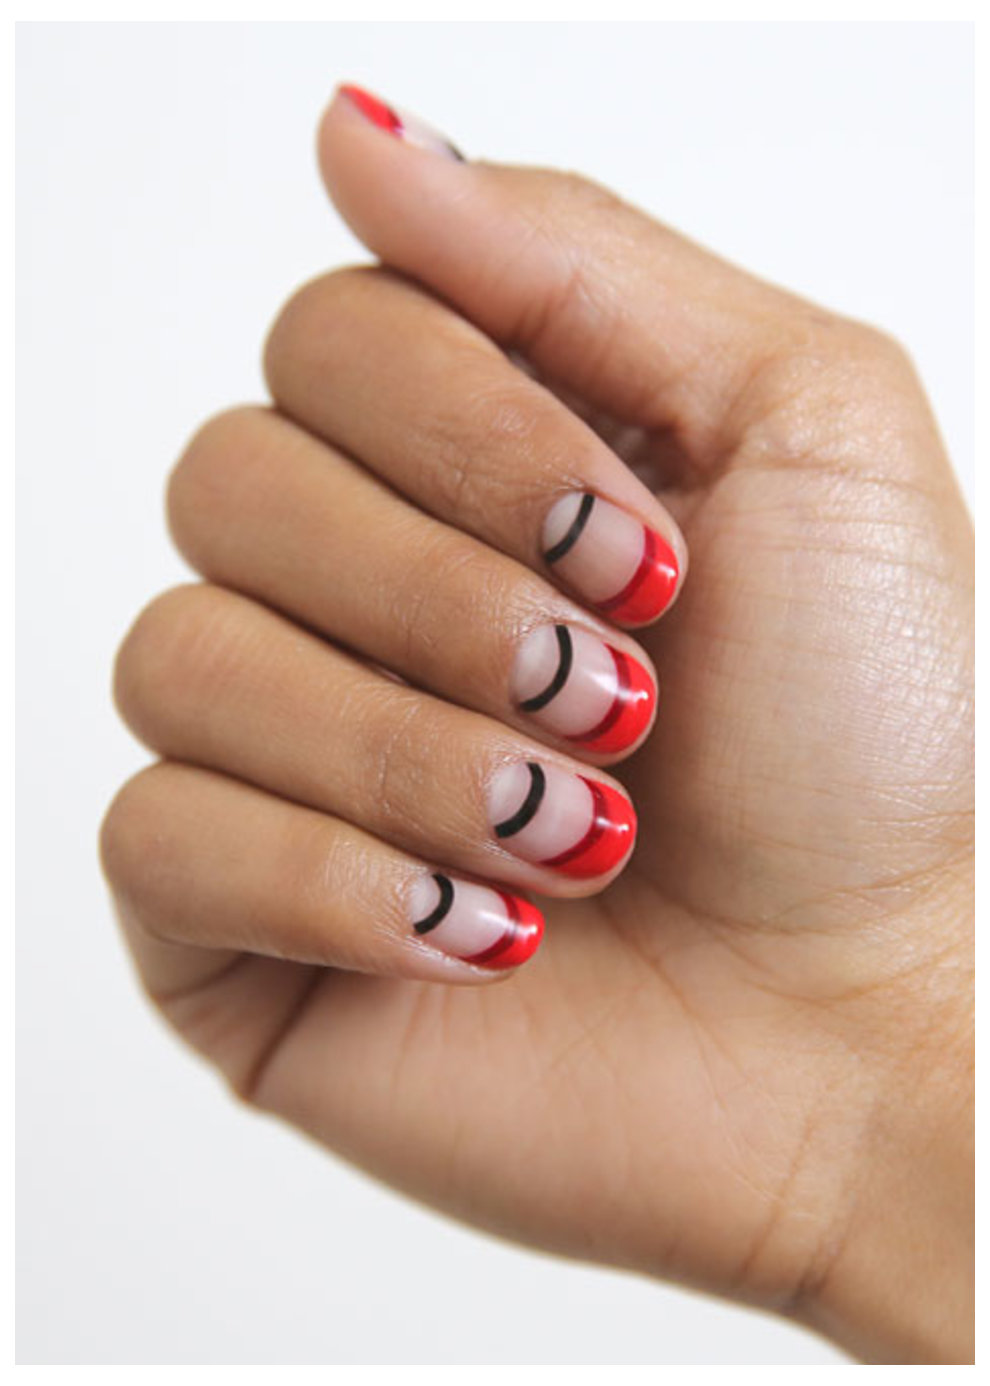 Professional Gel Polish nail art by OPI and Mei Kawajiri @nailsbymei